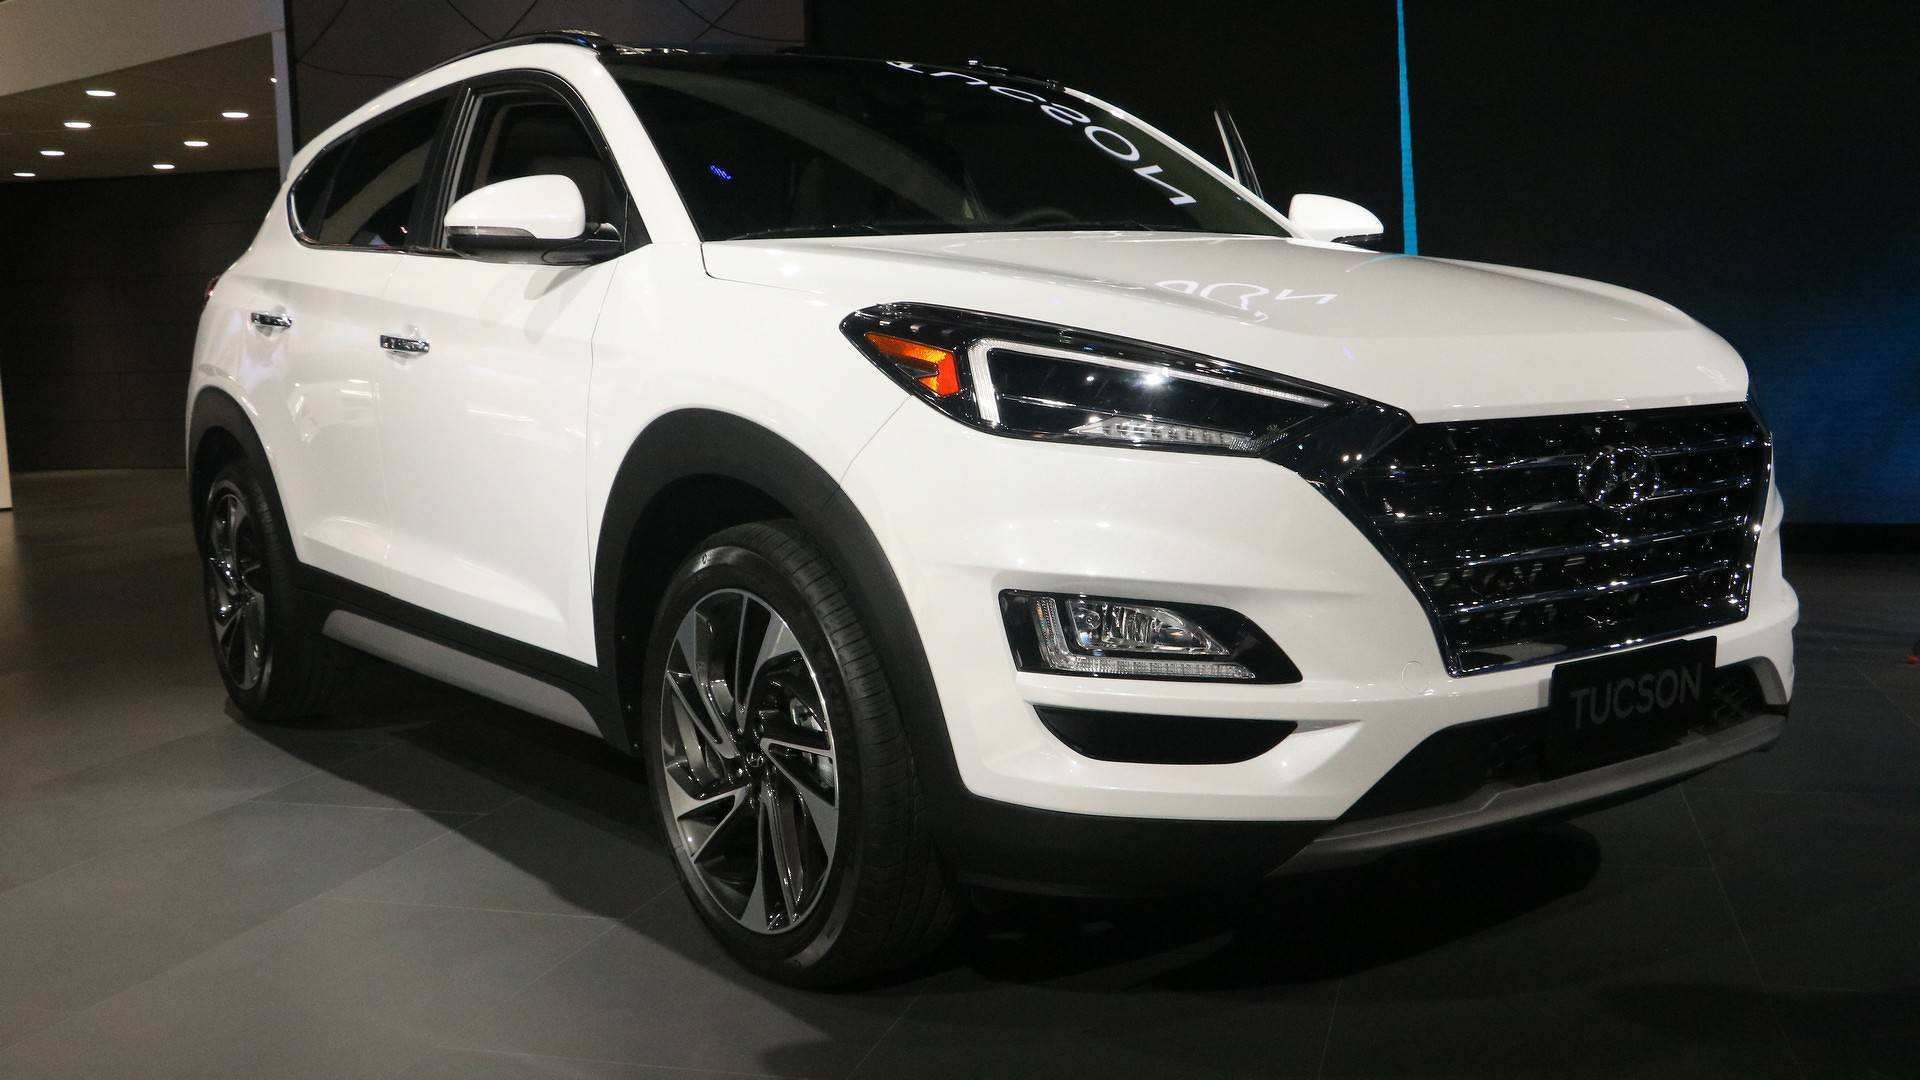 76 All New 2019 Hyundai Tucson Specs And Review